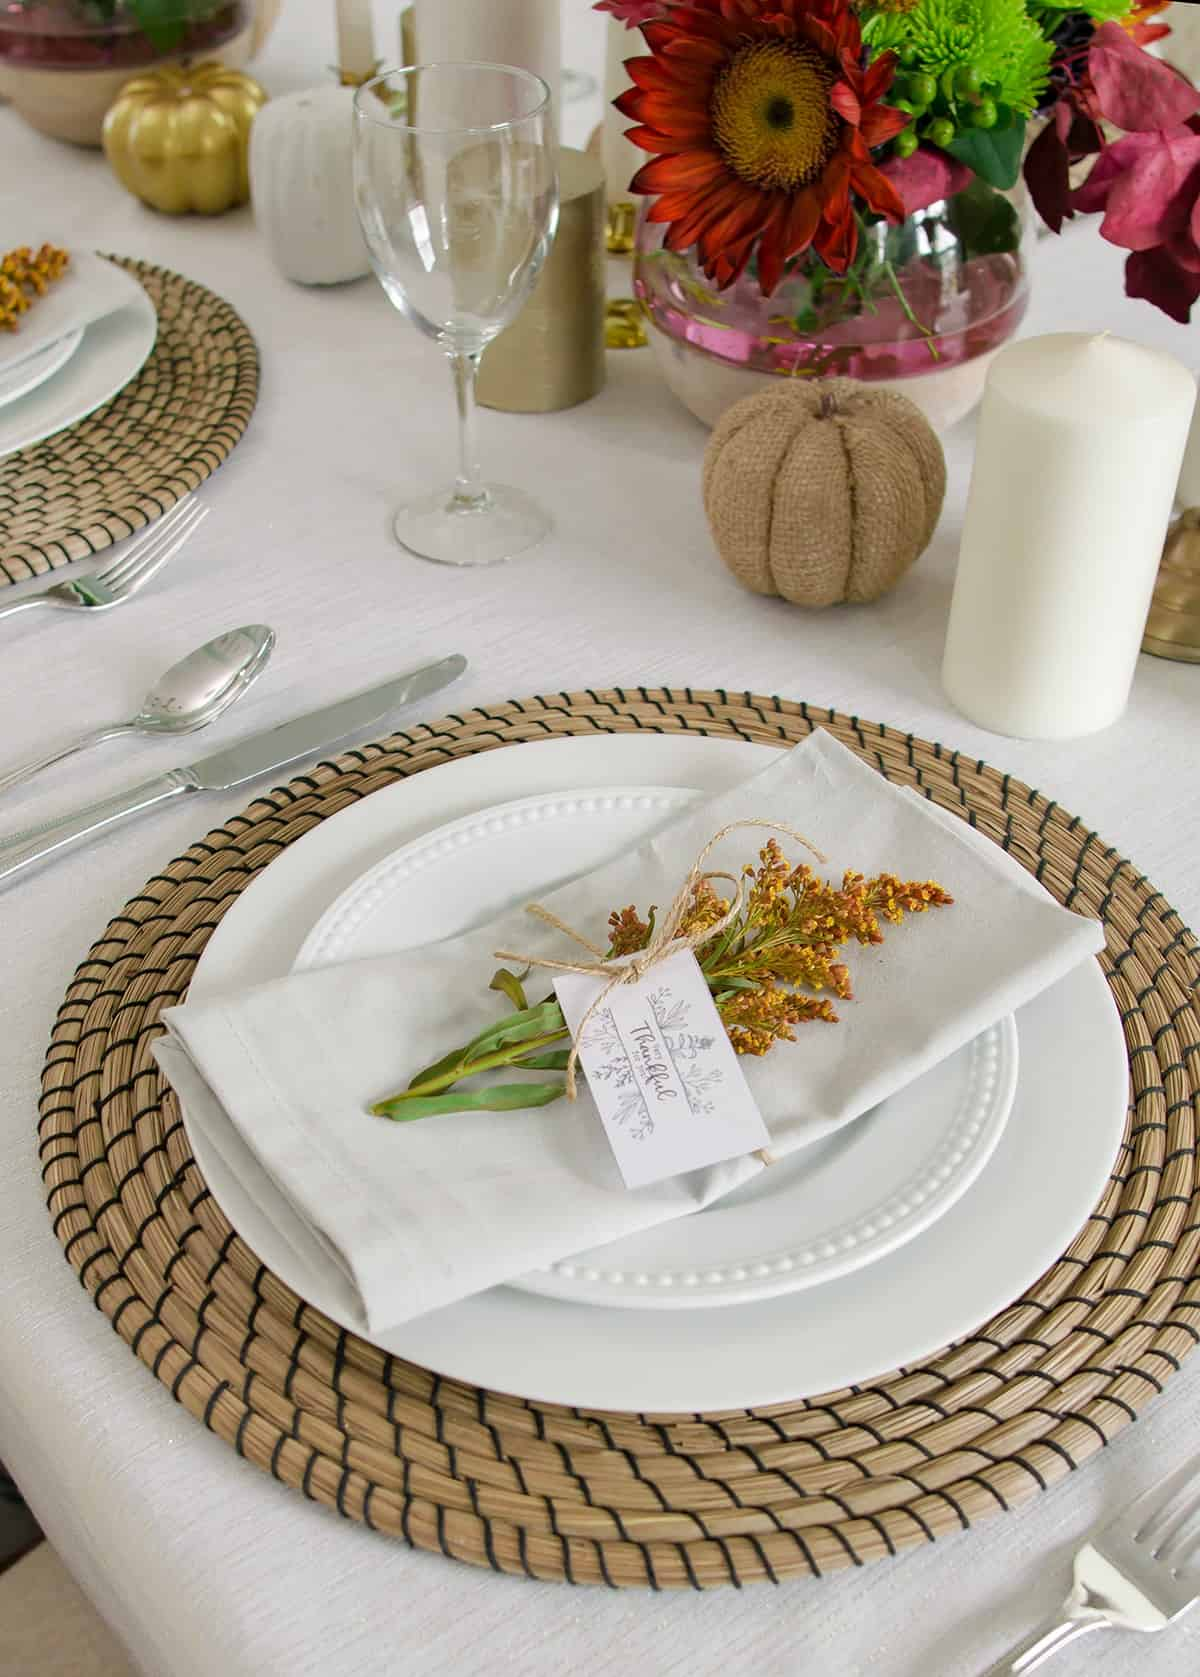 Free Printable Thanksgiving Place cards or tags. Great to use for gifts, favors, or anyone you are thankful for!